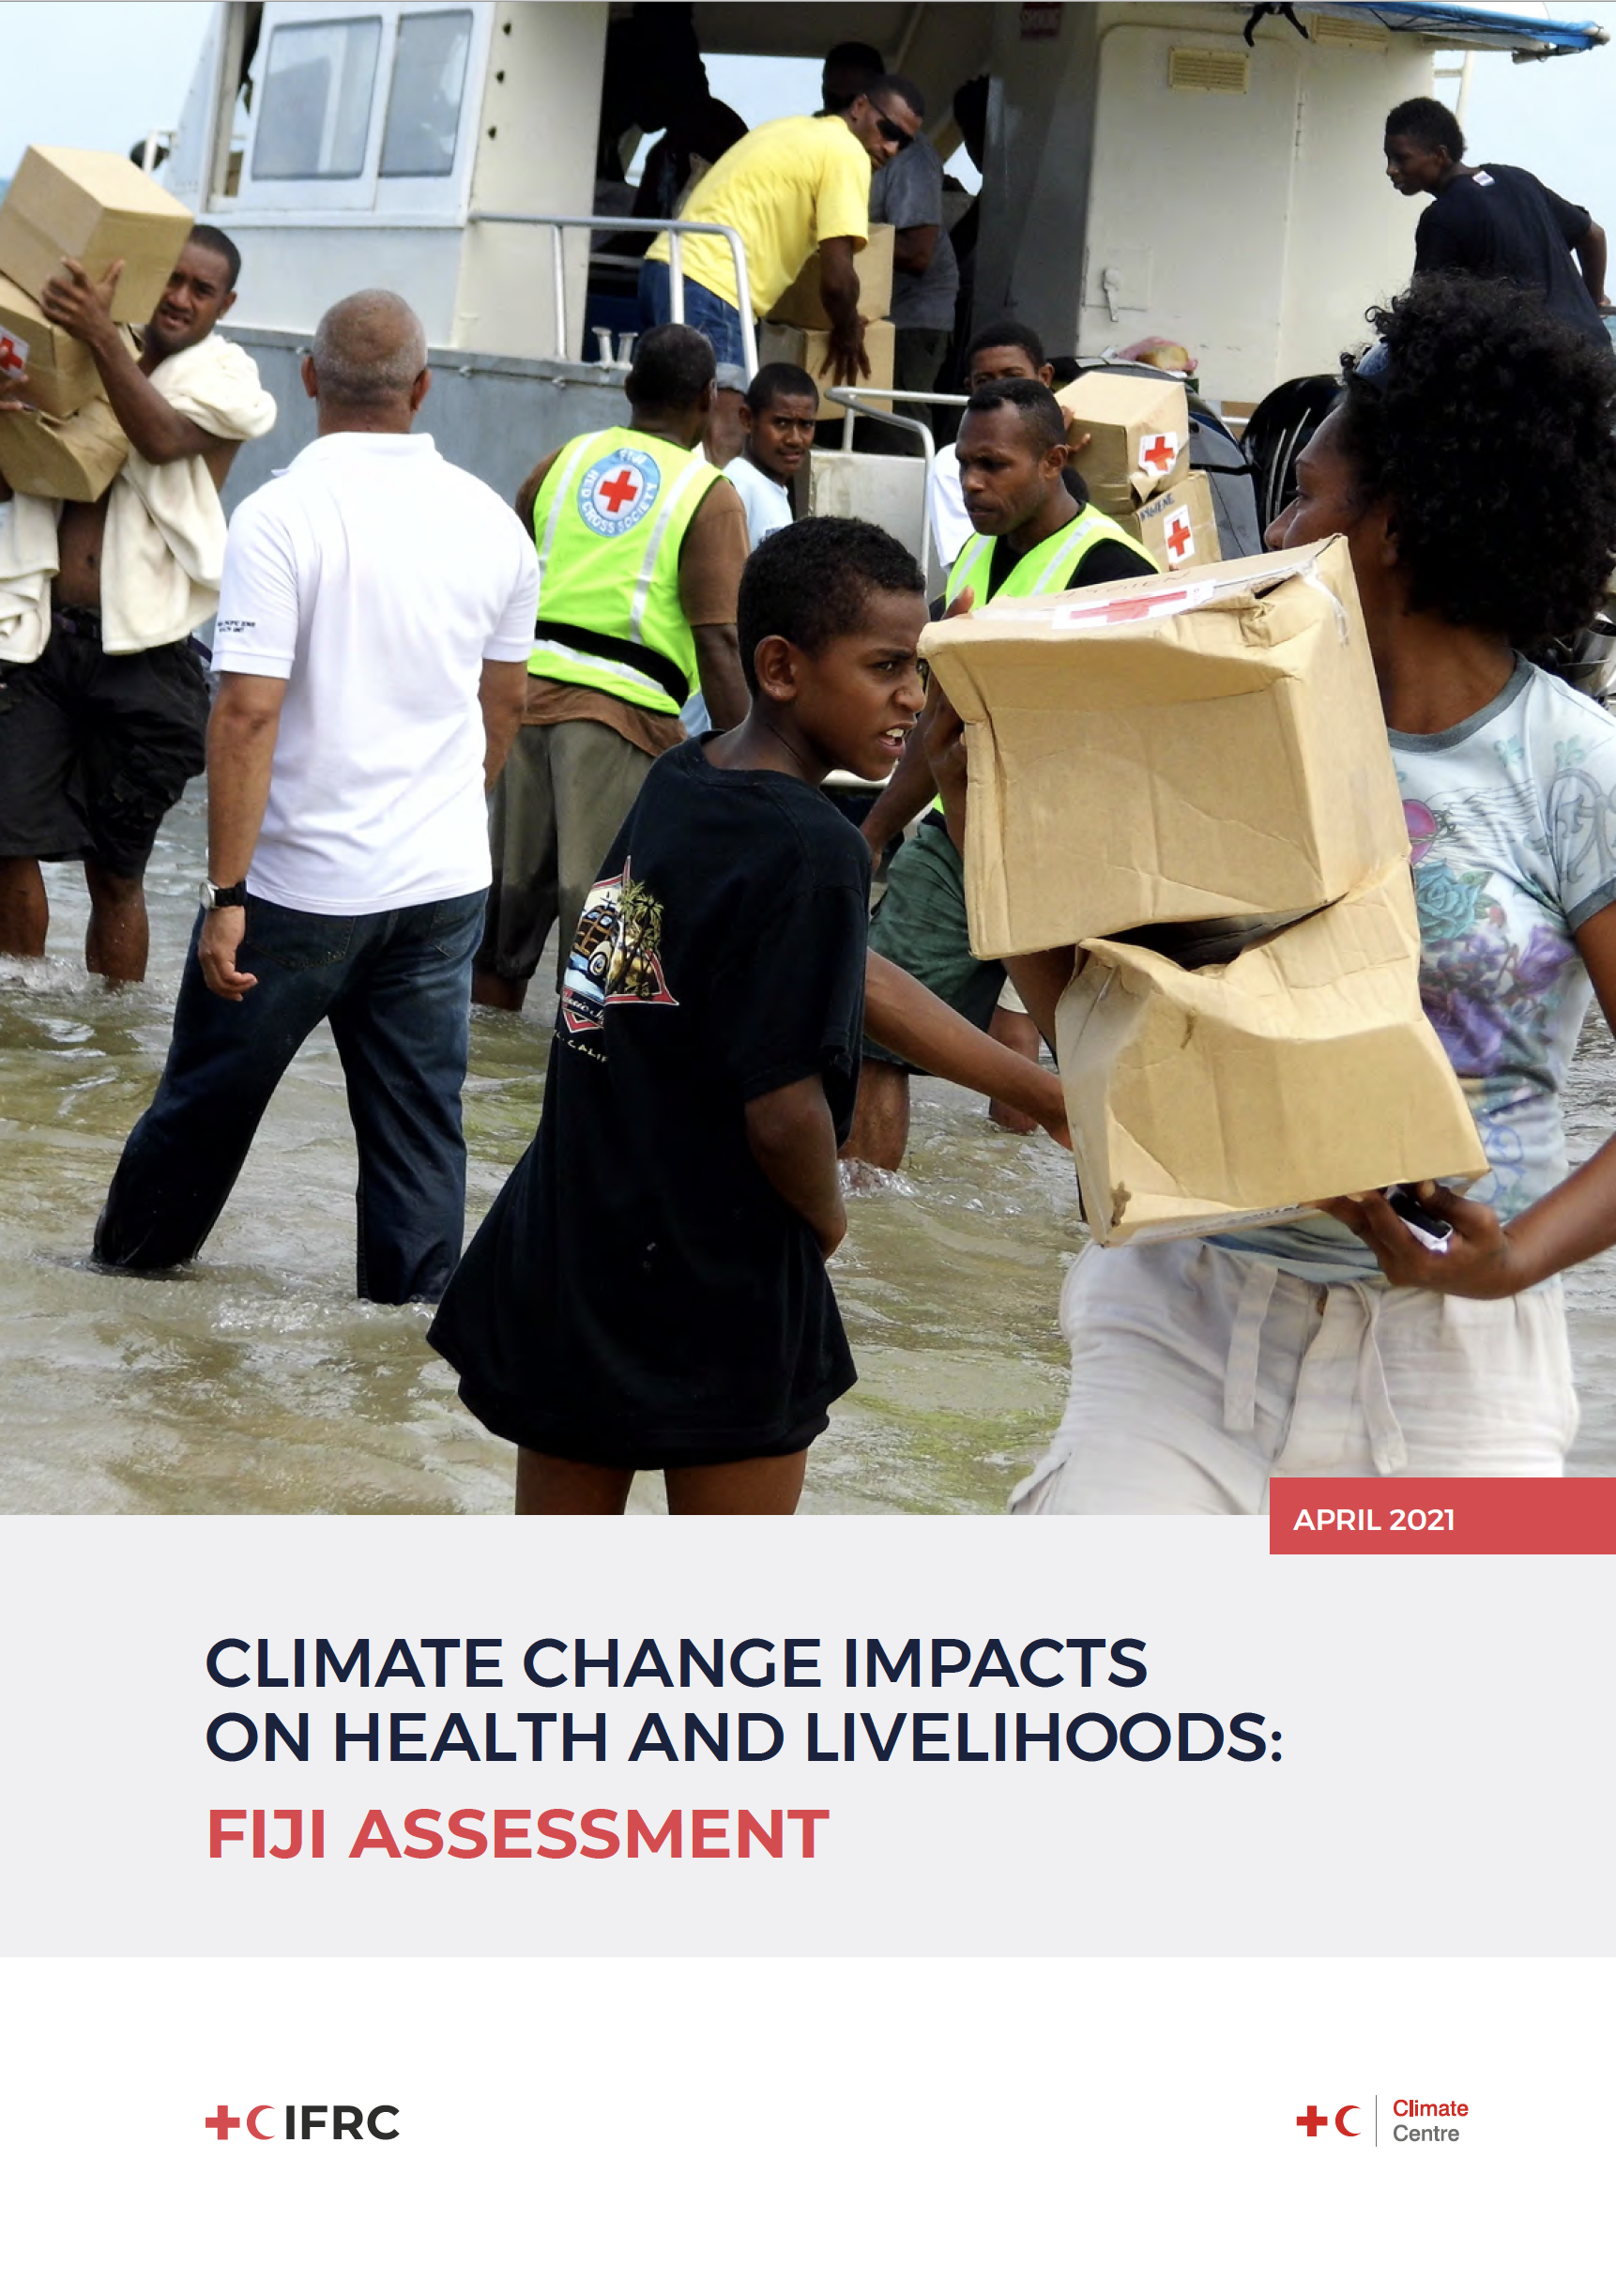 Climate Change Impacts on Health and Livelihoods: Fiji Assessment